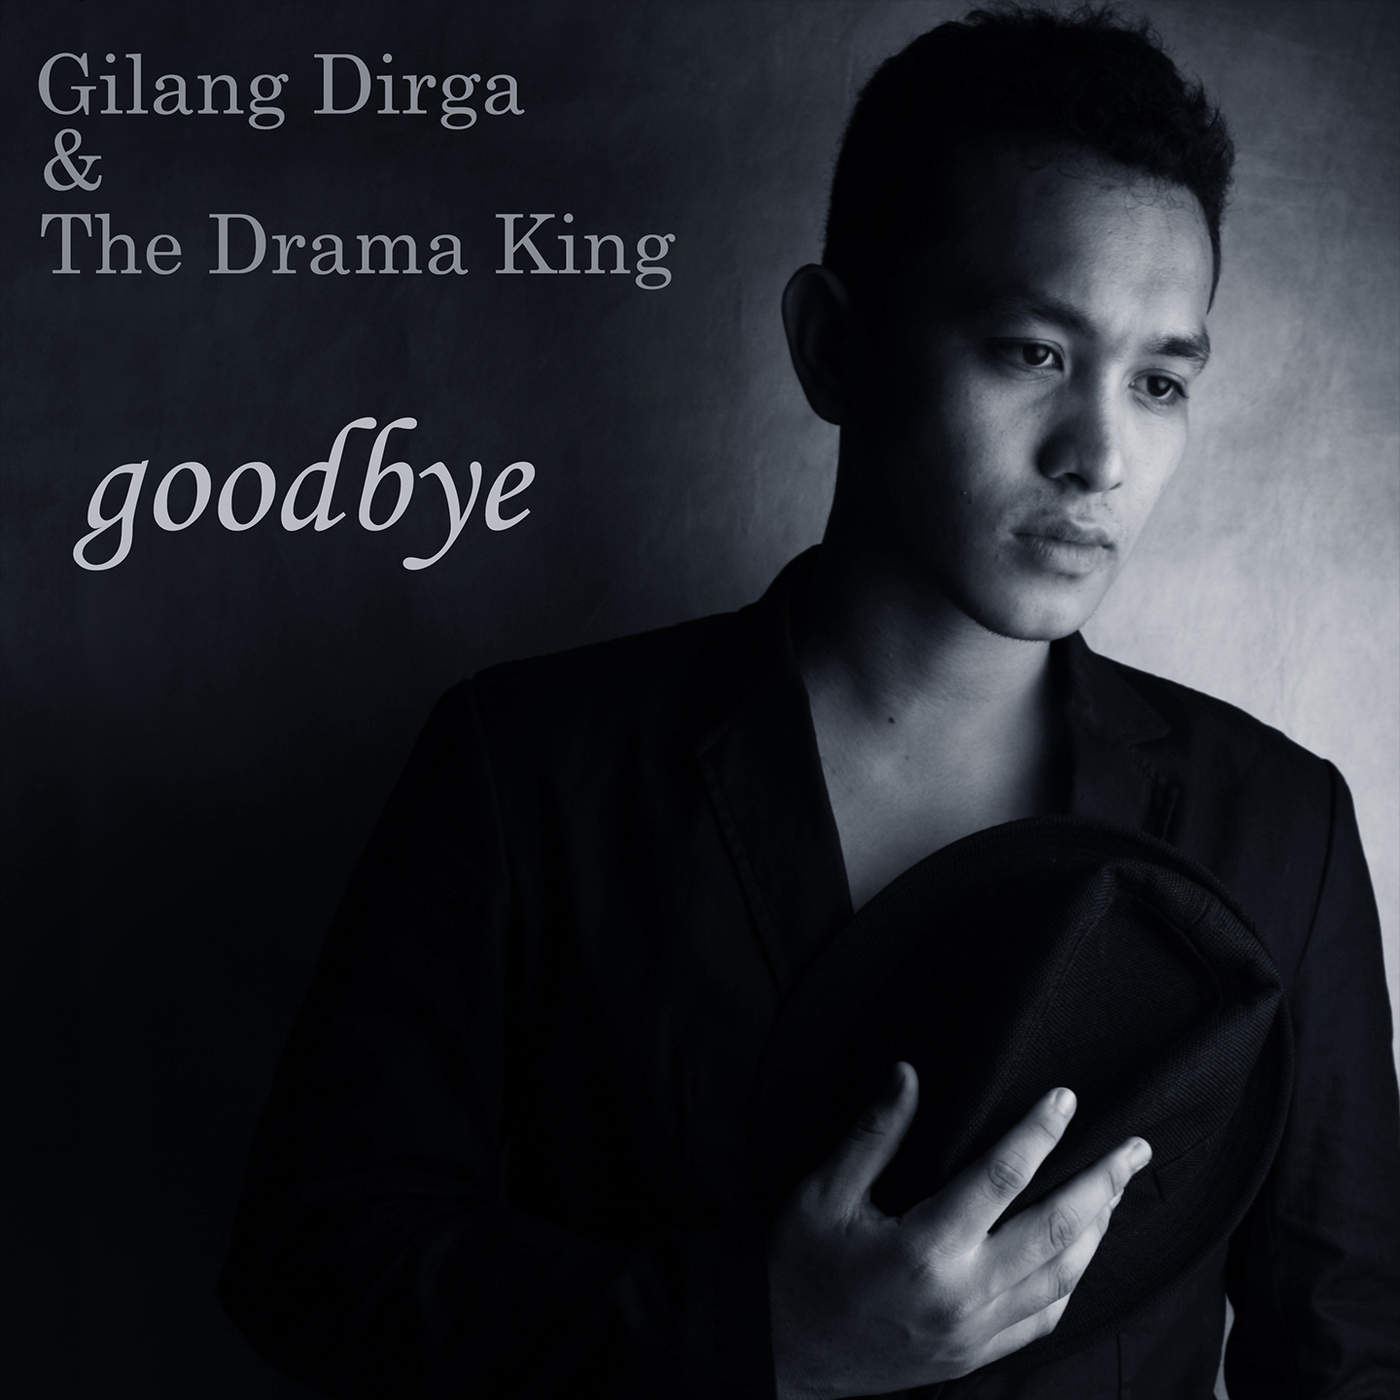 Gilang Dirga & The Drama King - Goodbye - Single (2014) [iTunes Plus AAC M4A] | iTunes Plus AAC ...